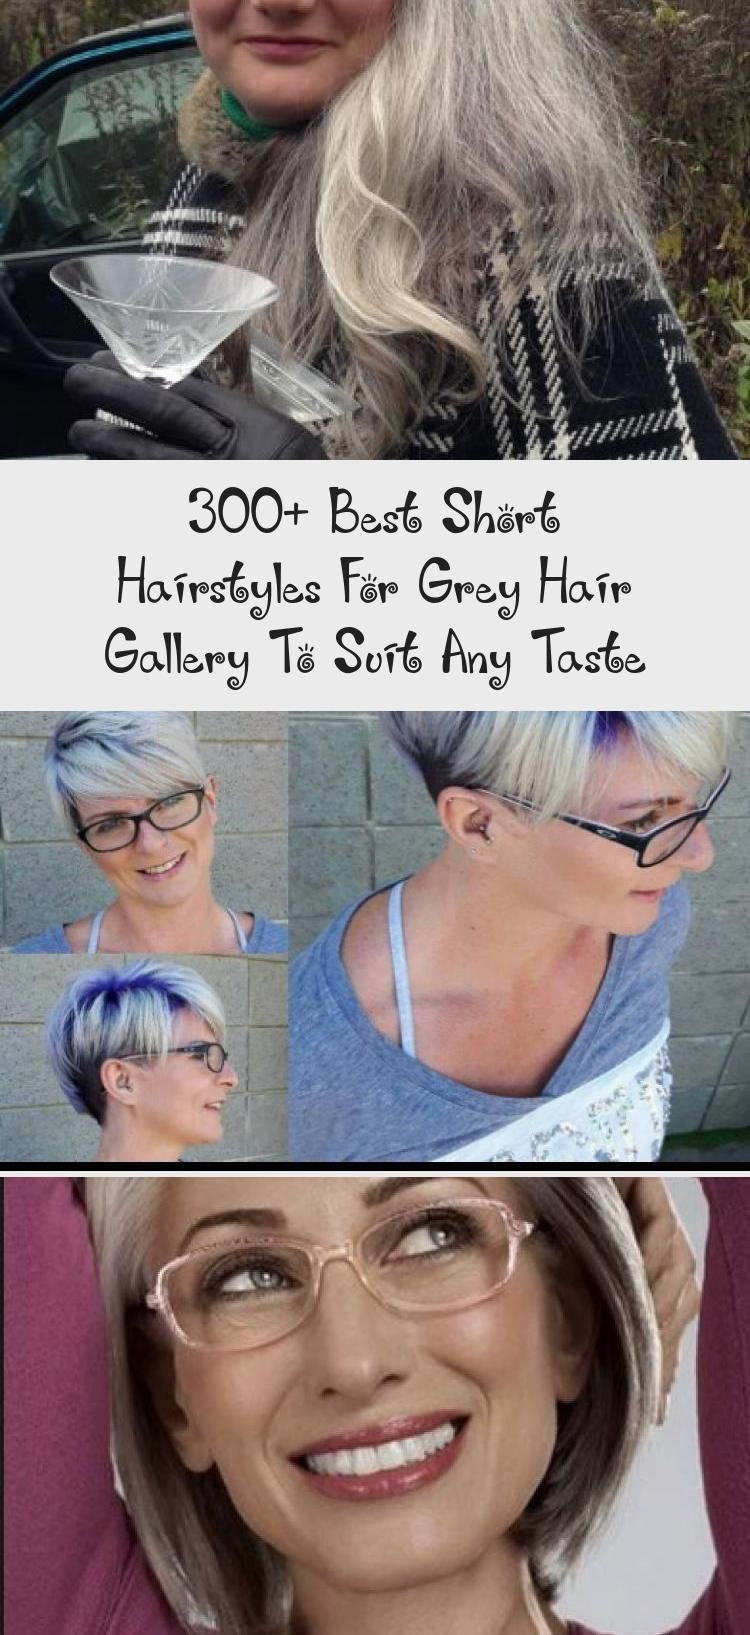 Long Hairstyles For Gray Hair With Glasses Grayhairideas Charcoalgrayhair Steelgrayhair Grayhairgetridof Gal In 2020 Short Hair Styles Hair Styles Cool Hairstyles